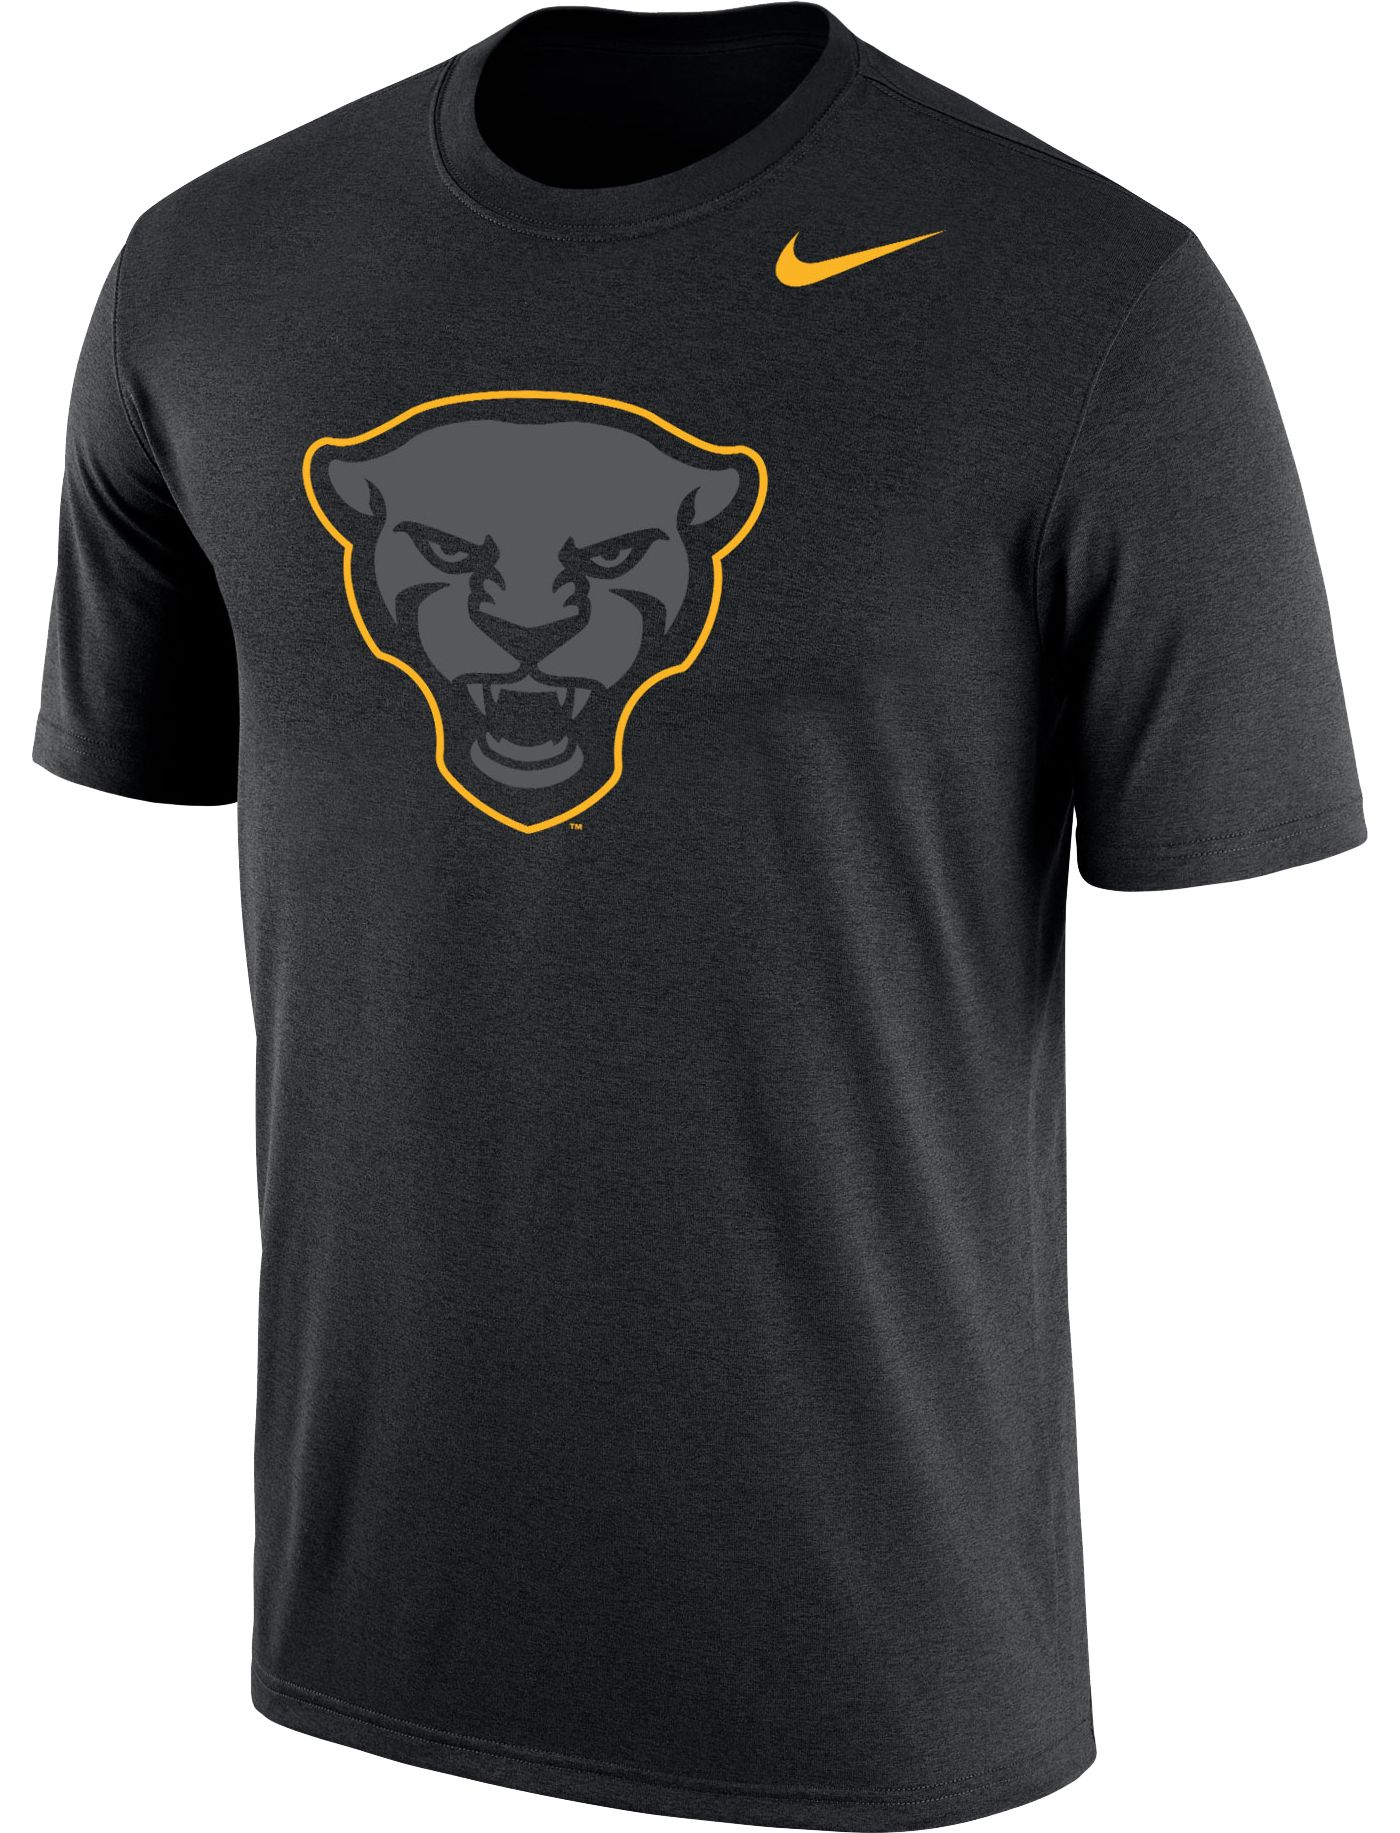 Nike Men's Pitt Panthers Panther Head Logo Dri-FIT Cotton Black T-Shirt